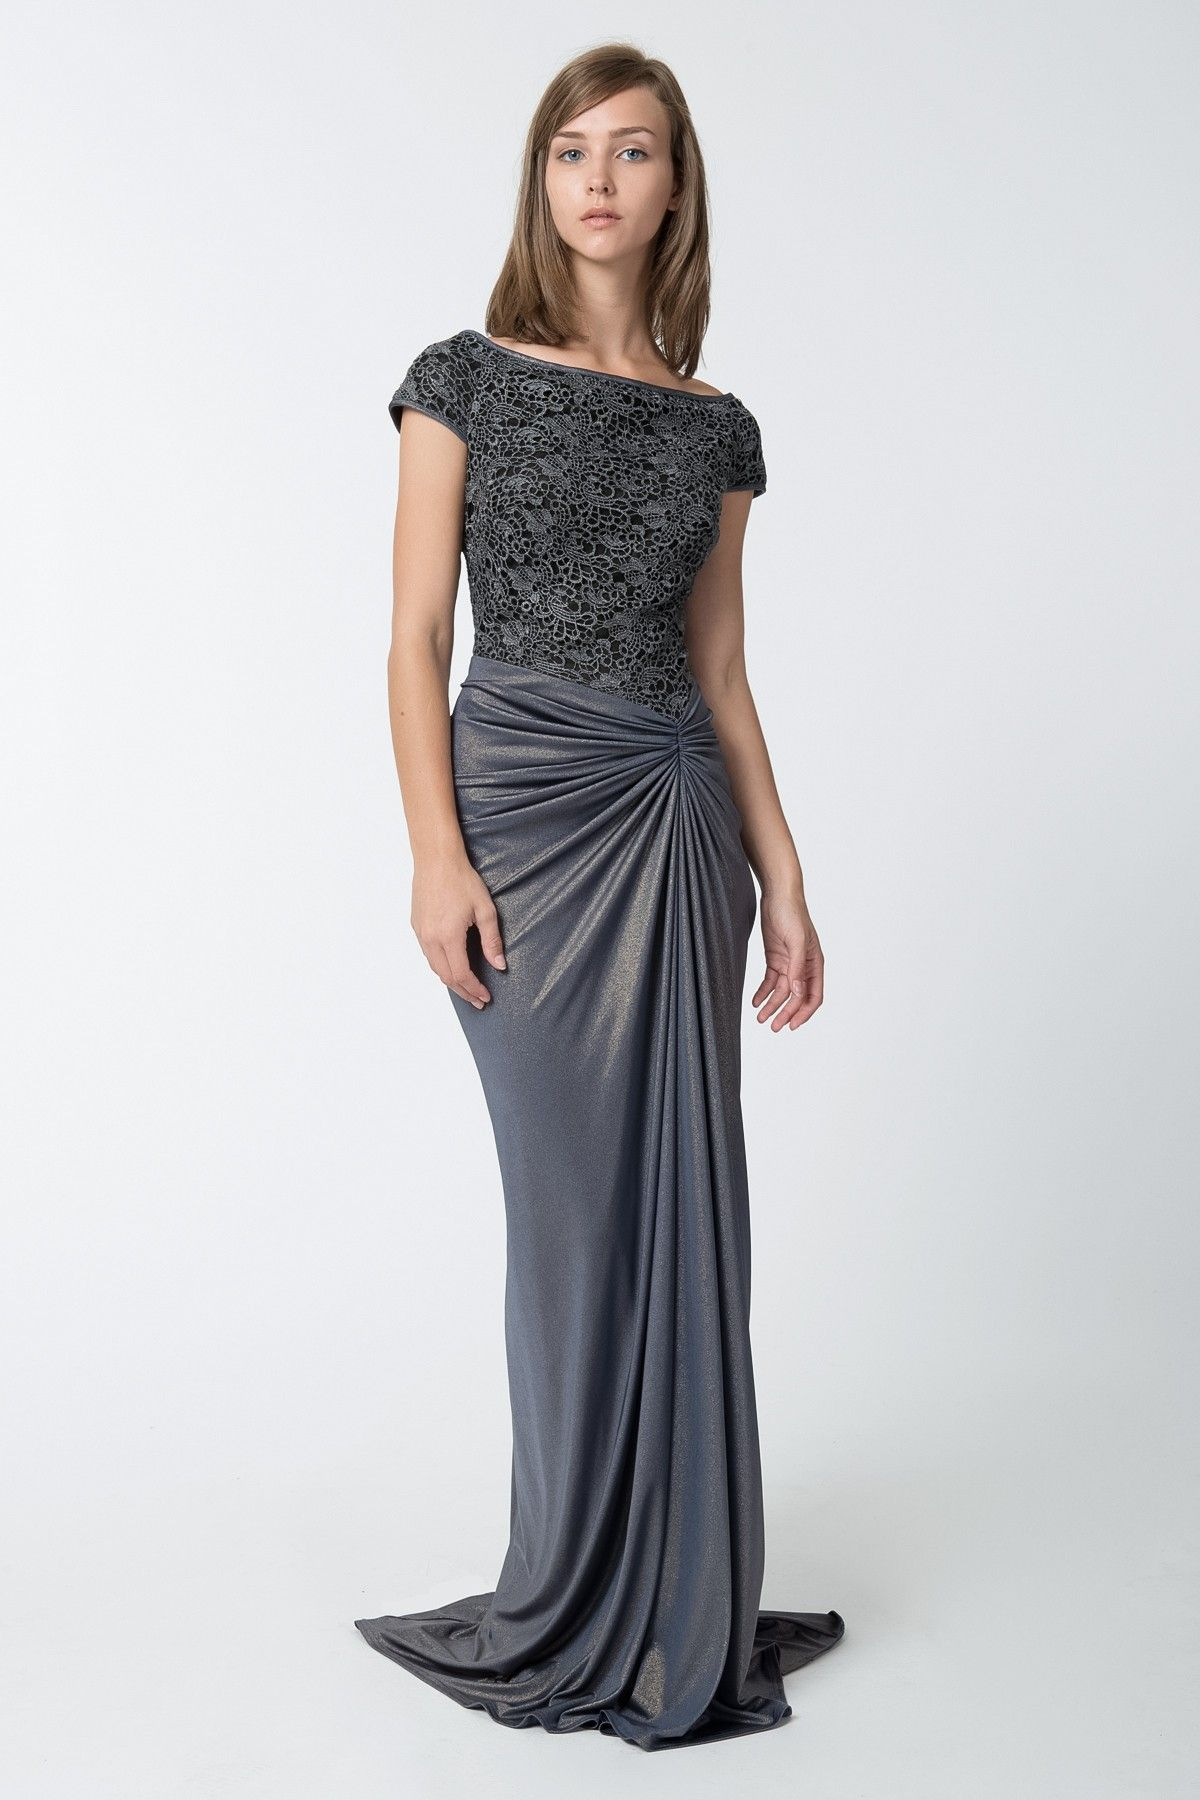 Metallic Lace and Draped Jersey Gown in Duchess Grey - Evening Gowns ...